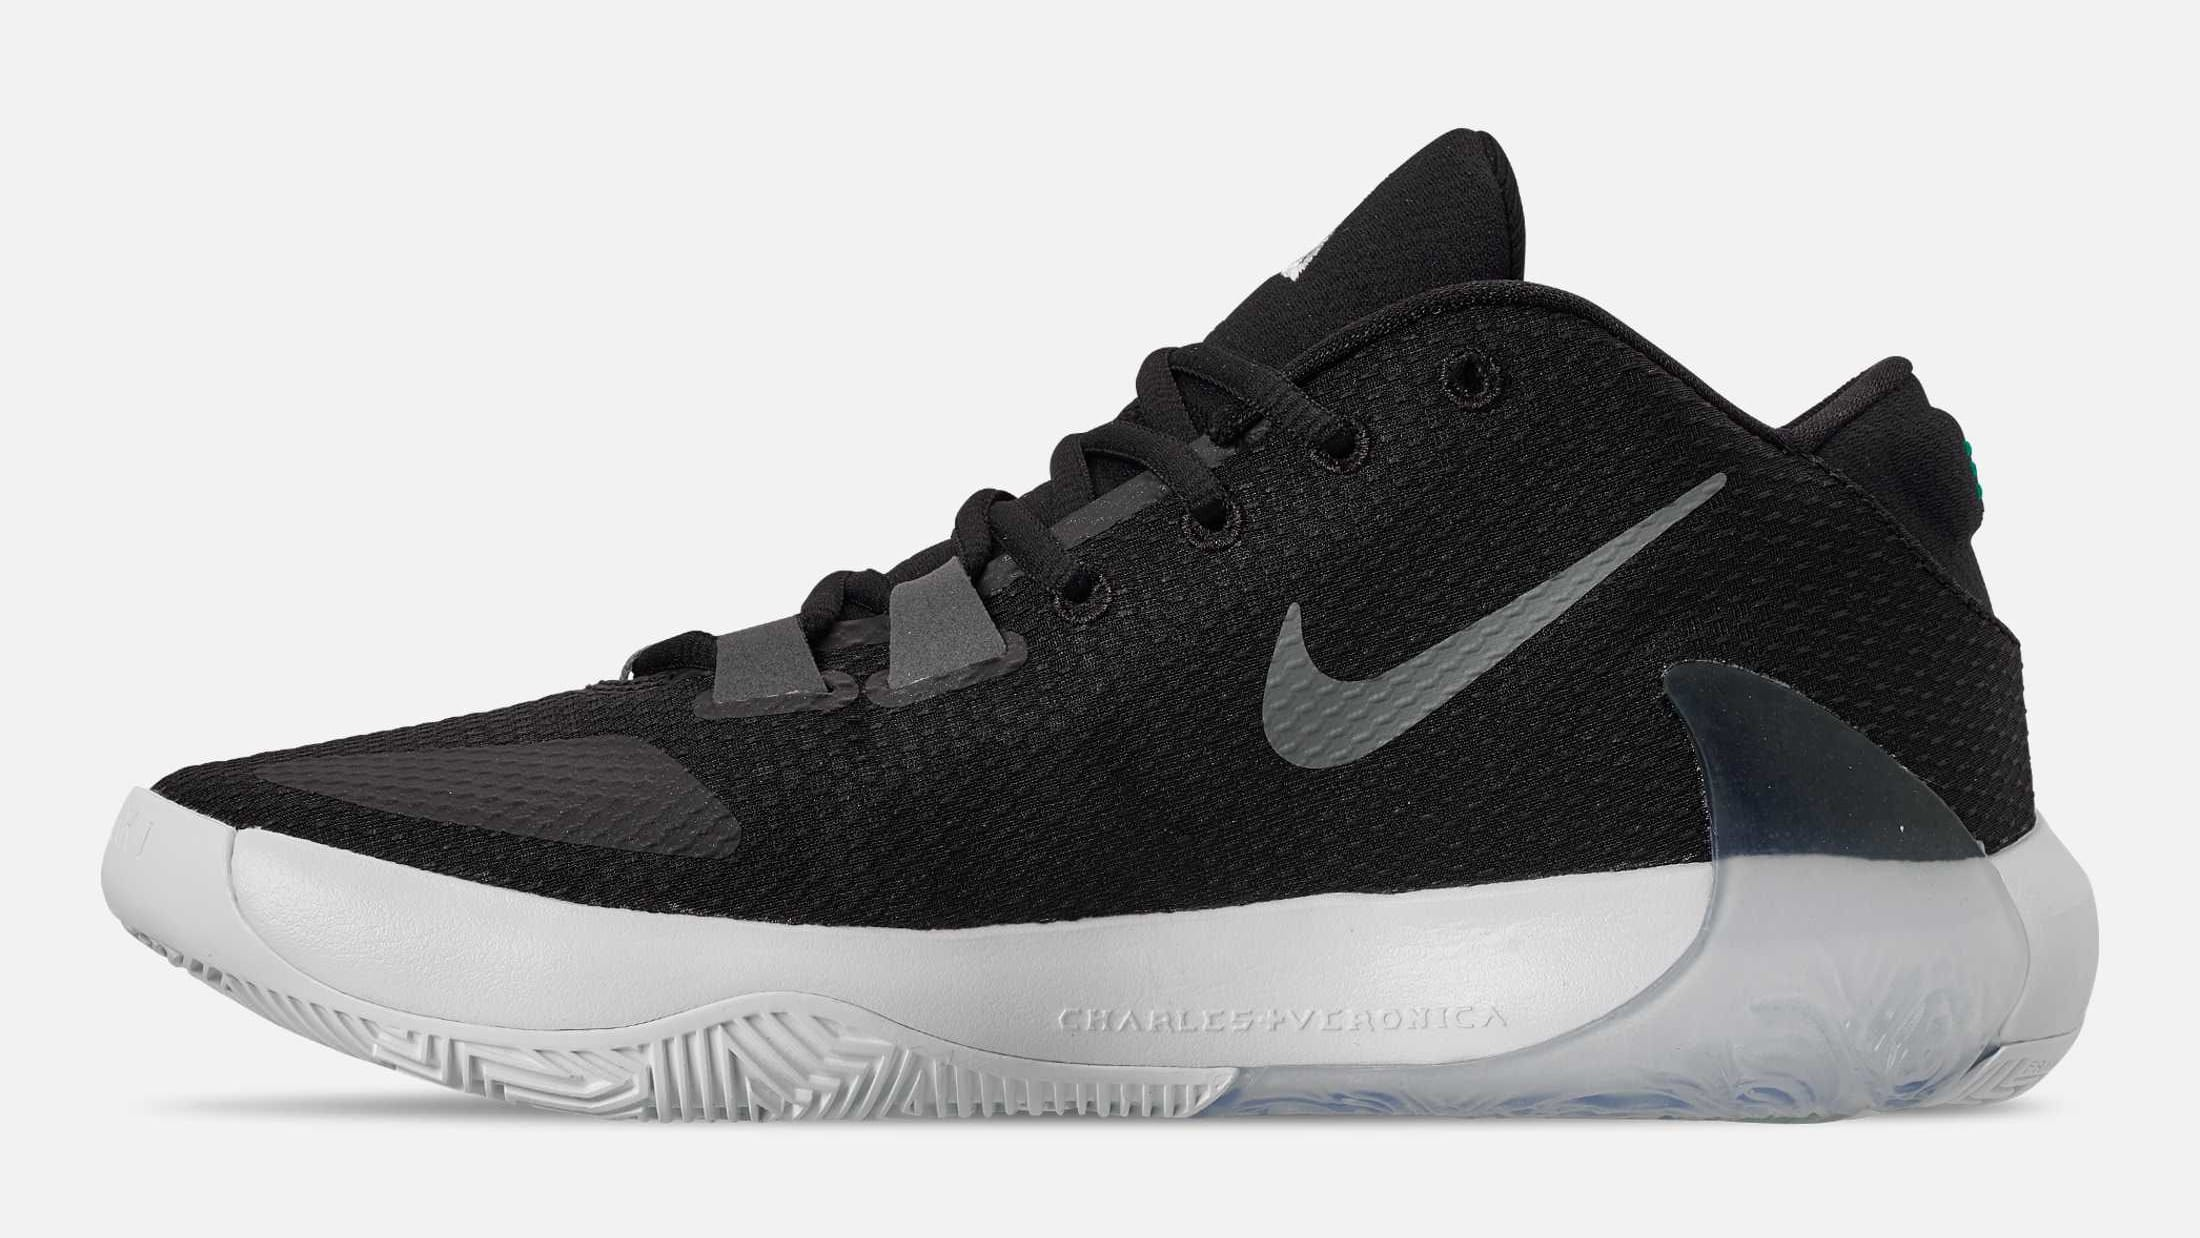 Nike Zoom Freak 1 Black Release Date BQ5422-001 Medial